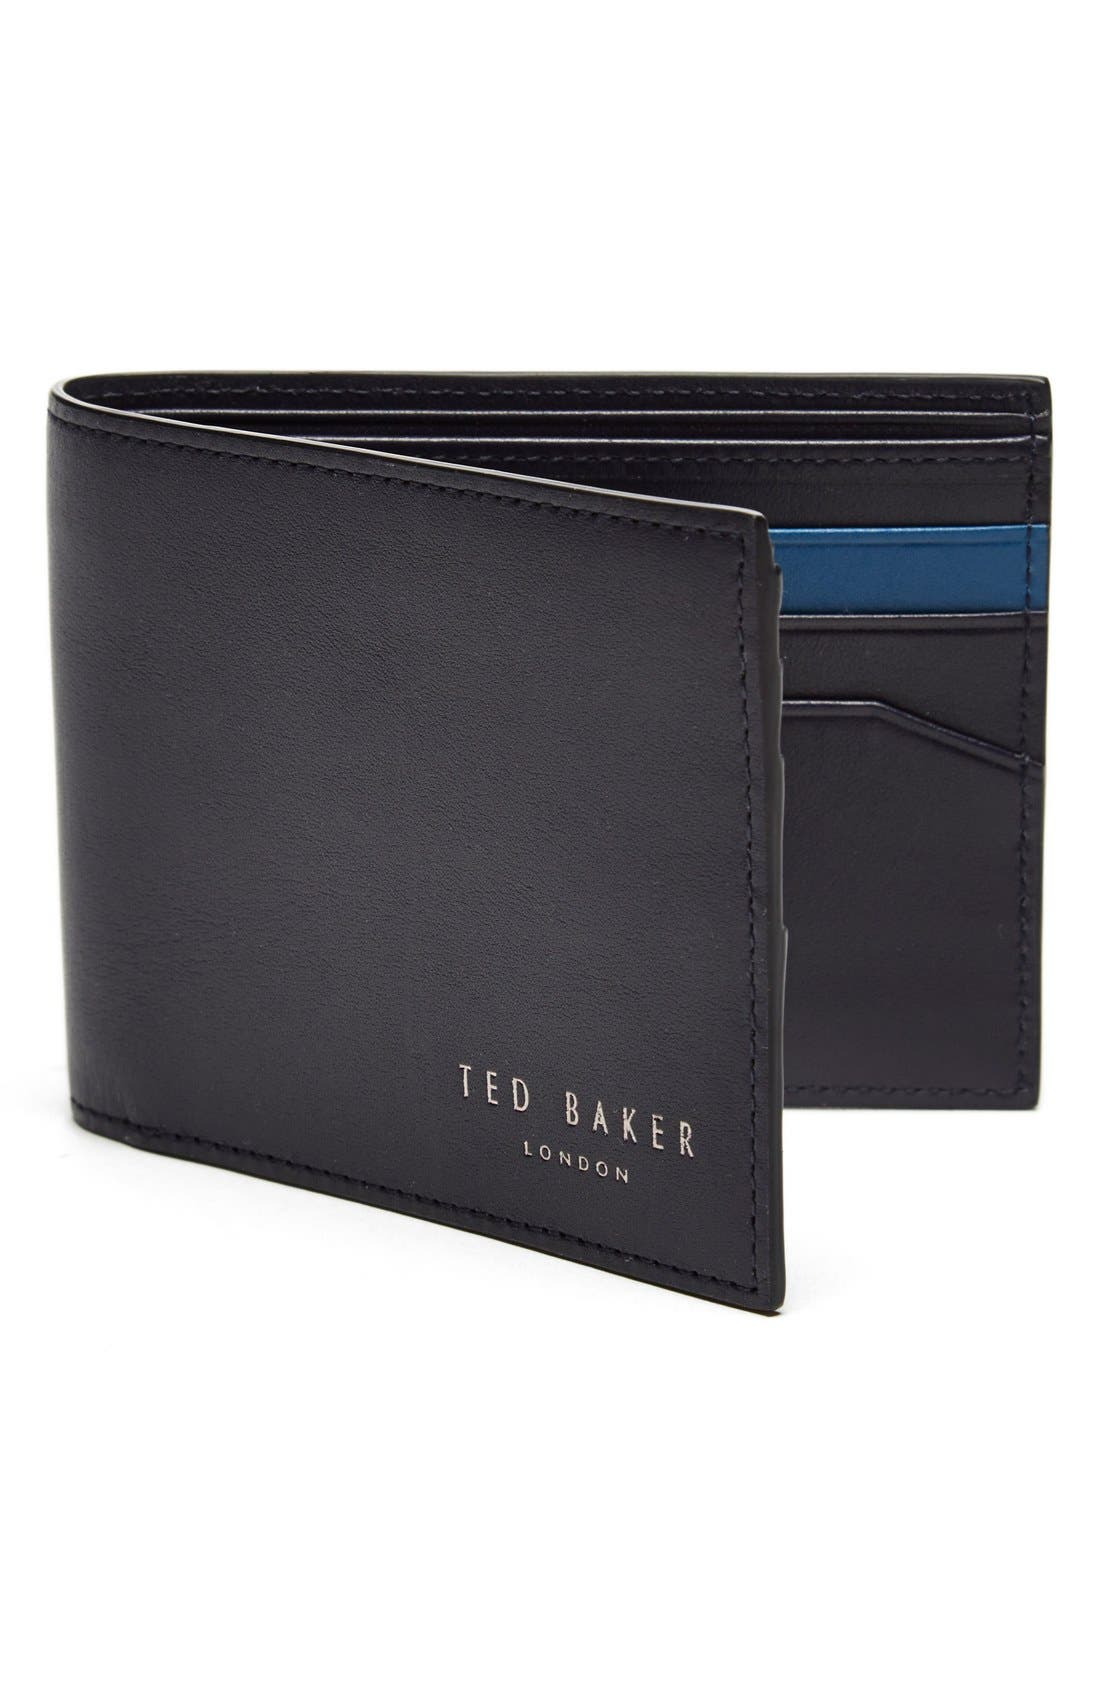 Alternate Image 1 Selected - Ted Baker London Leather Wallet